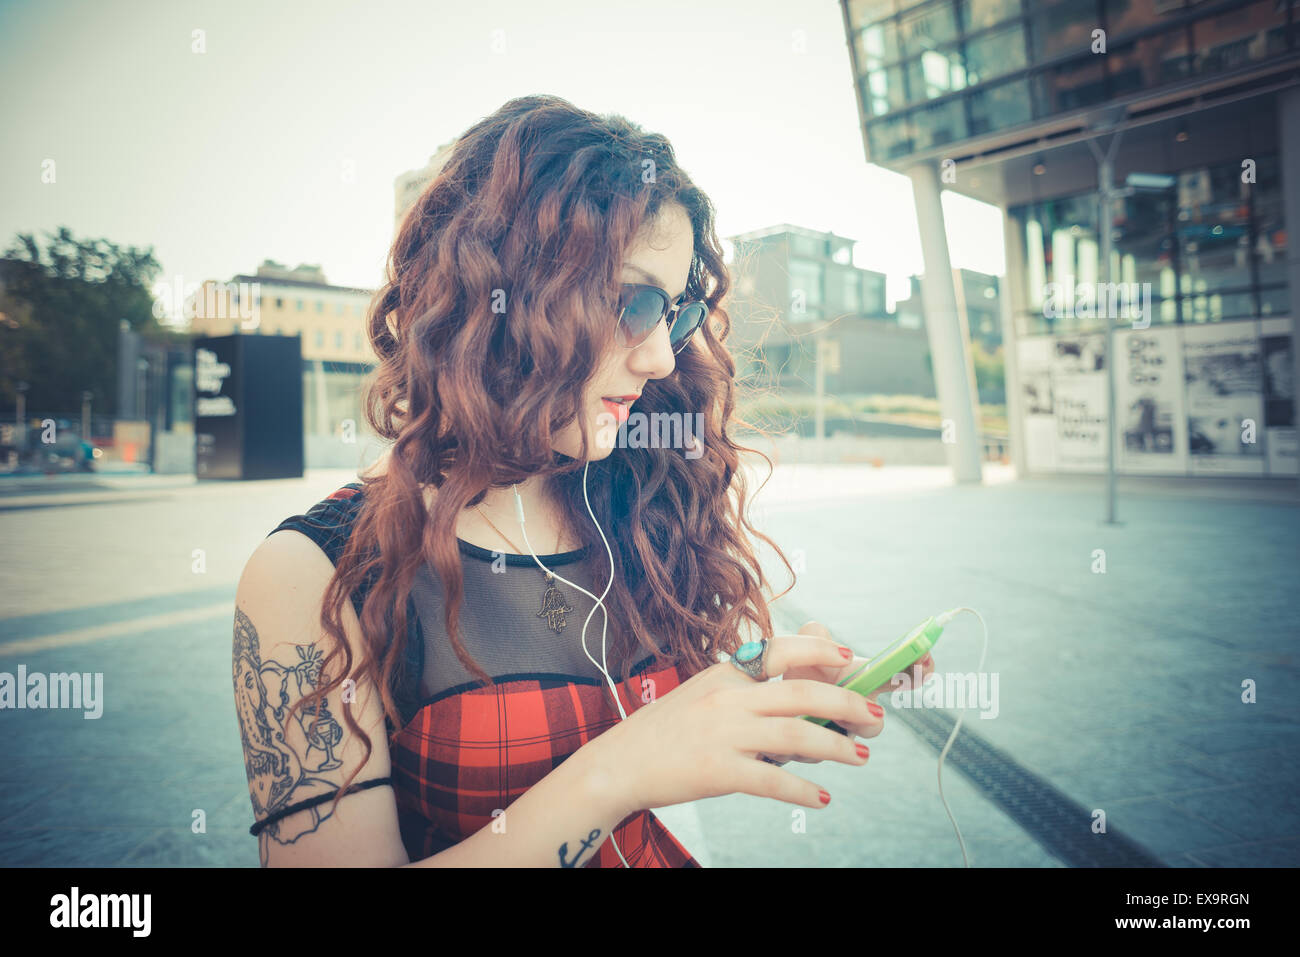 young beautiful hipster woman with red curly hair listening music in the city - Stock Image